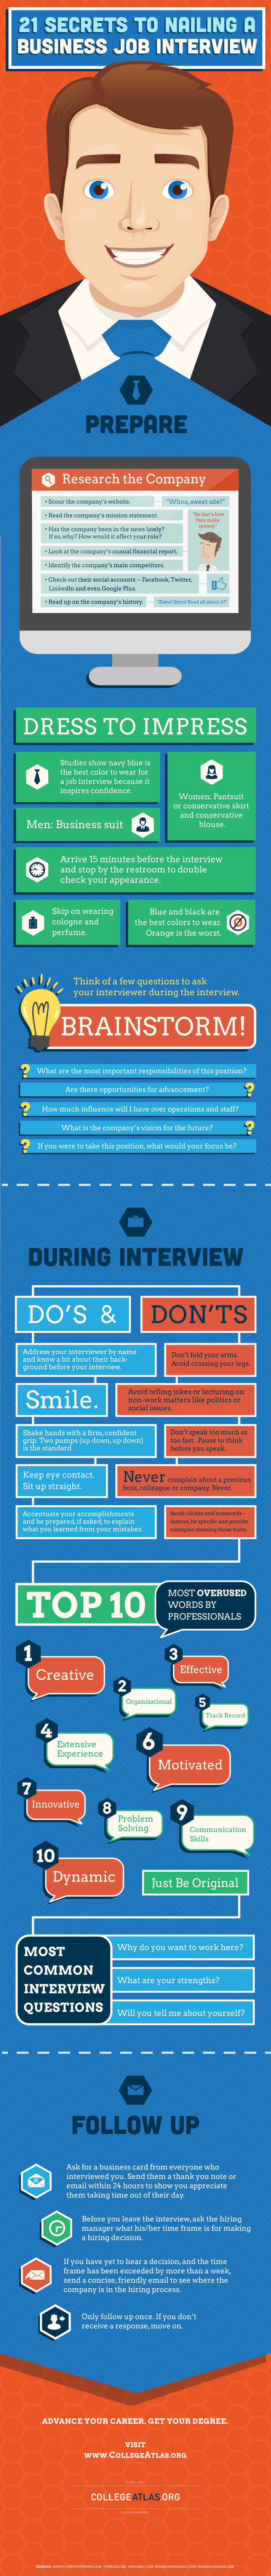 What To Do Before And During A Job Interview